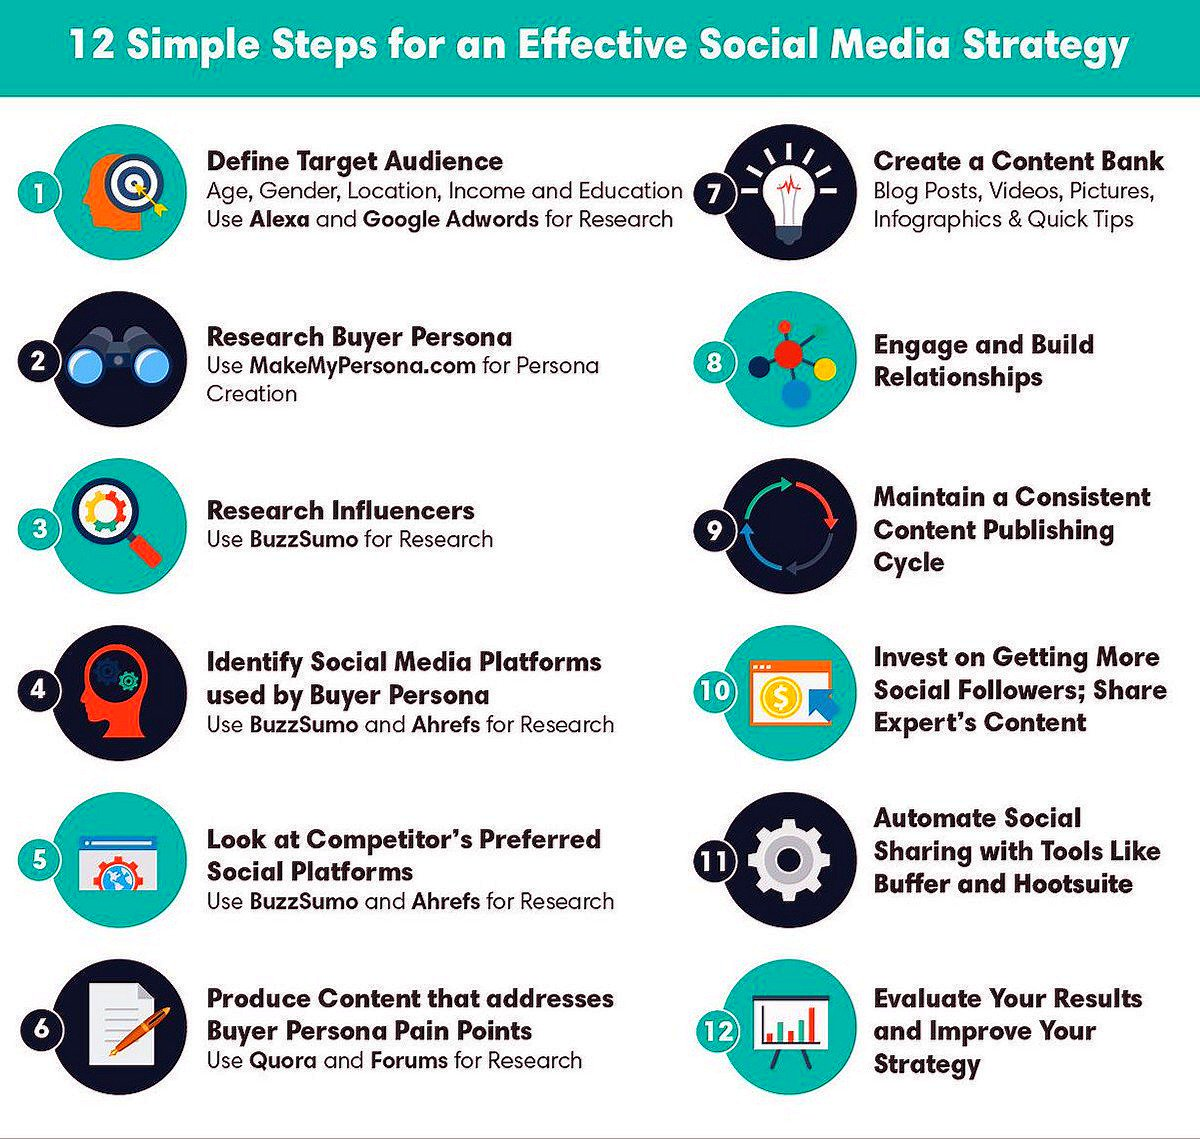 12 Simple Steps to Build Your Effective #SocialMedia Strategy [Infographic]  #GrowthHacking #SocialMediaMarketing #SMM<br>http://pic.twitter.com/iHNB1nGrw9